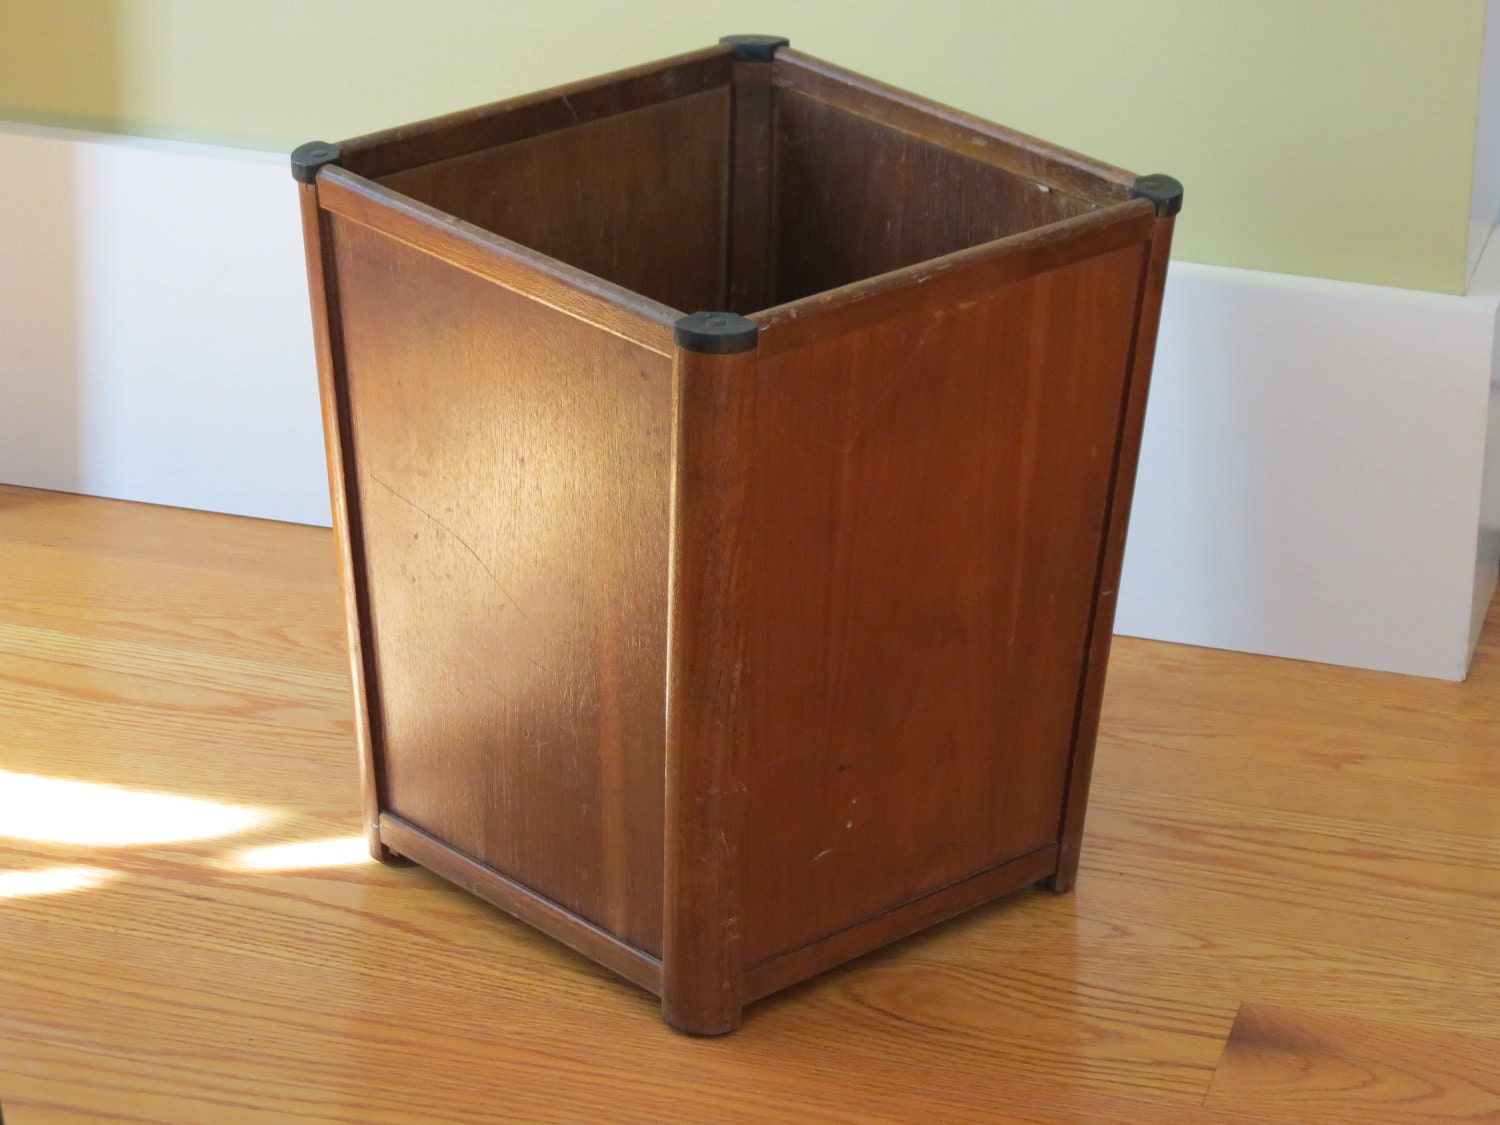 Vintage Wooden Garbage Can Planter Storage Office